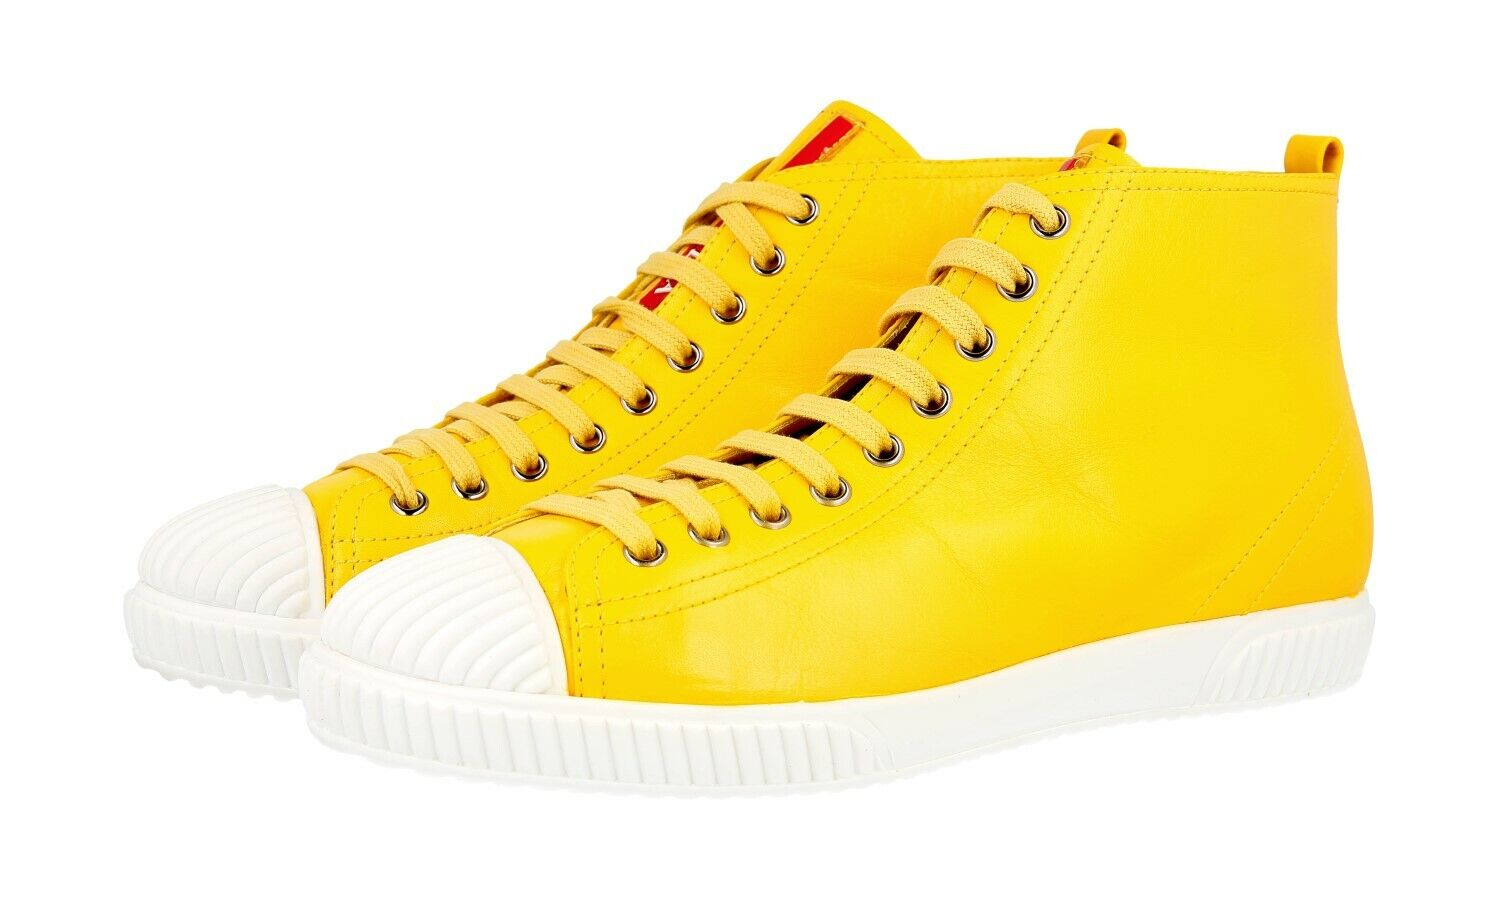 shoes HIGH-TOP SNEAKER PRADA LUXUEUX 3T5877 GIRASOLE NOUVEAUX 40 40,5